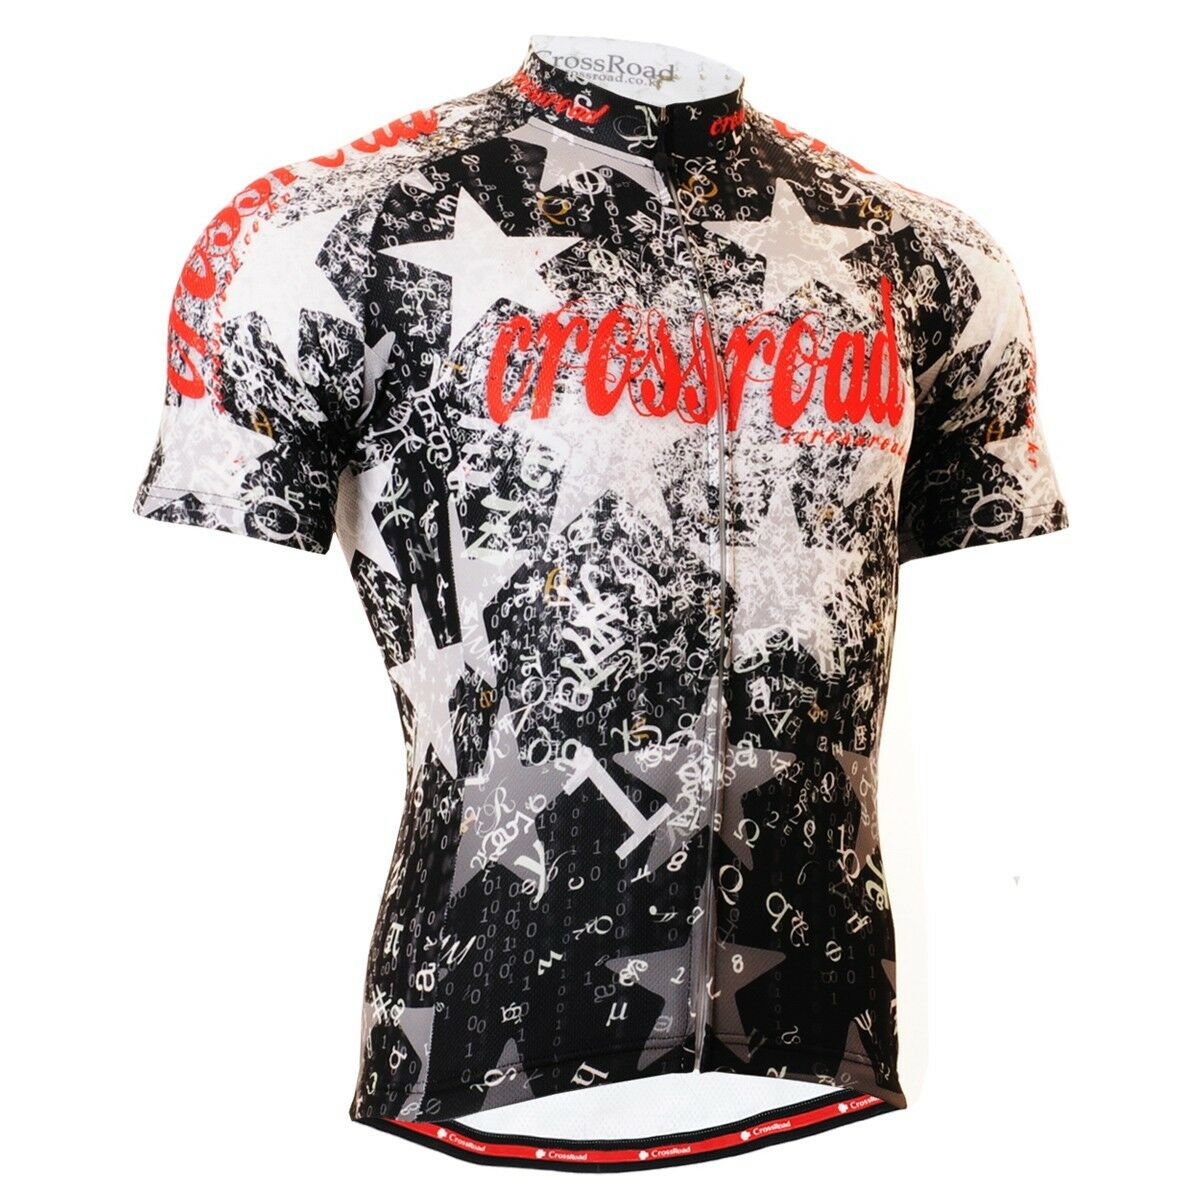 FIXGEAR CS-2402 Men's Short Sleeve Cycling Jersey Bicycle Apparel Roadbike MTB